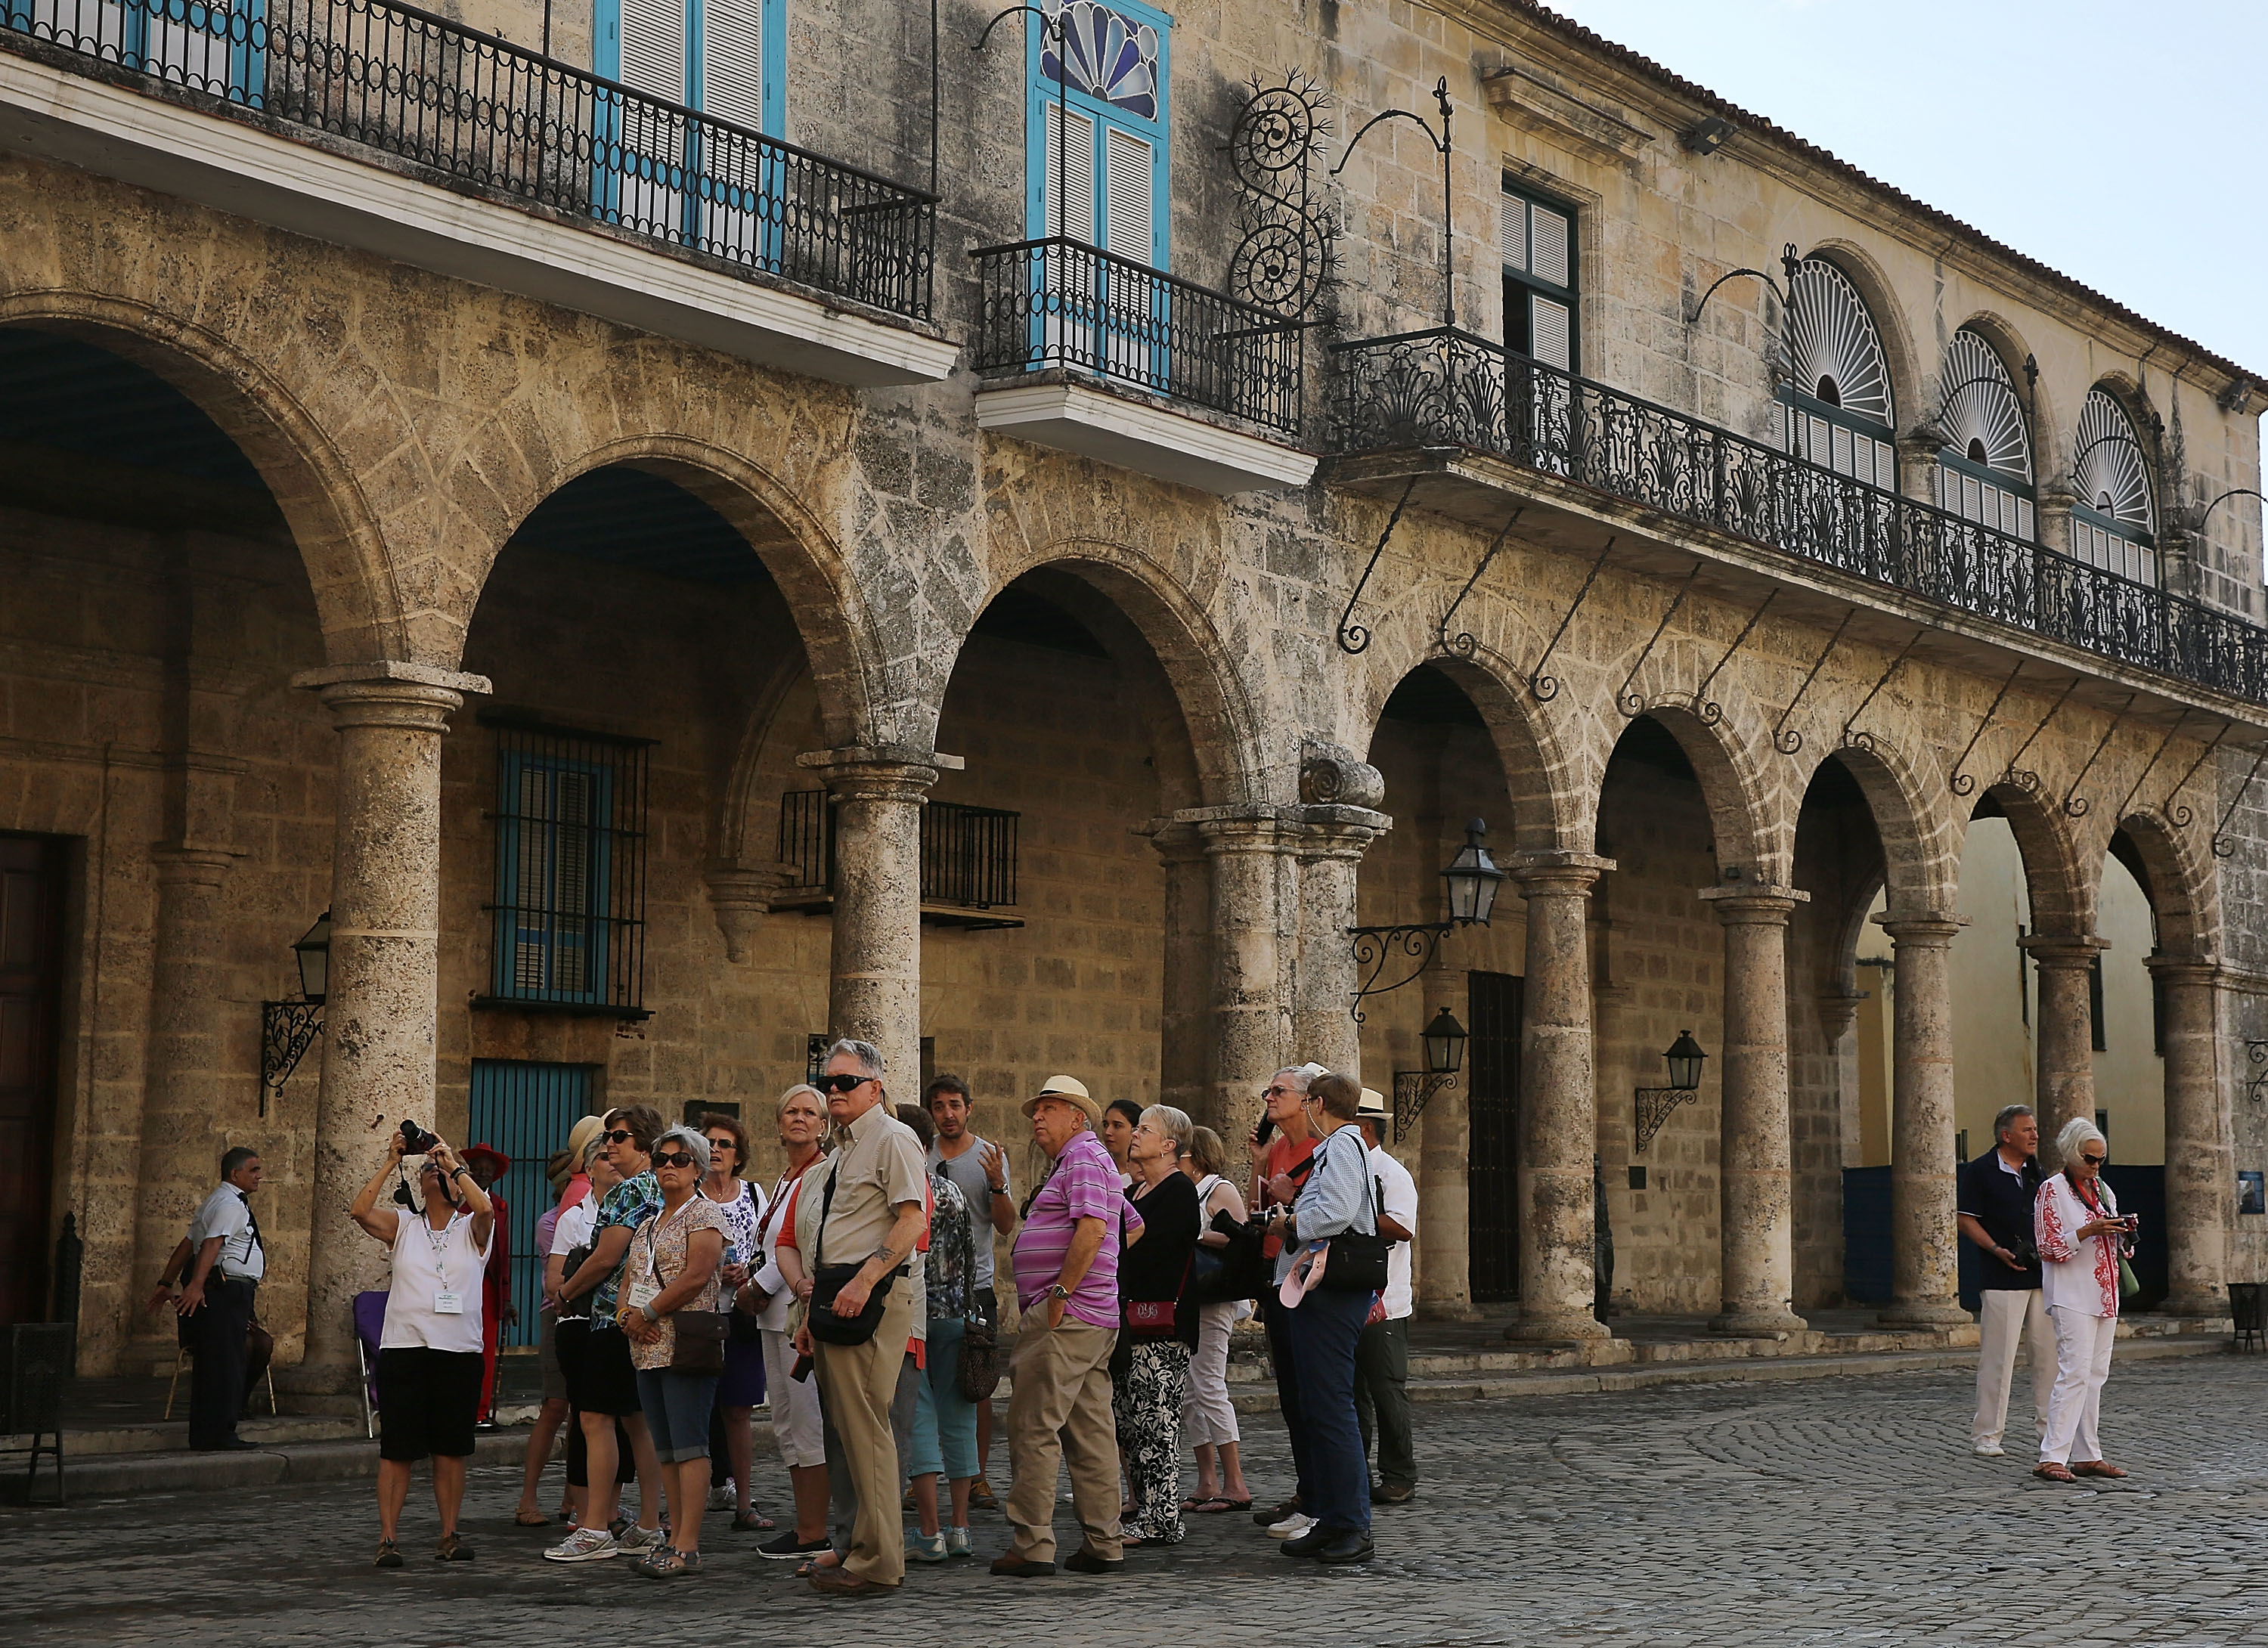 : Tourists take in the sites at Cathedral Square in Old Havana as Cuba prepares for the visit of US President Barack Obama on March 19, 2016, in Havana, Cuba.